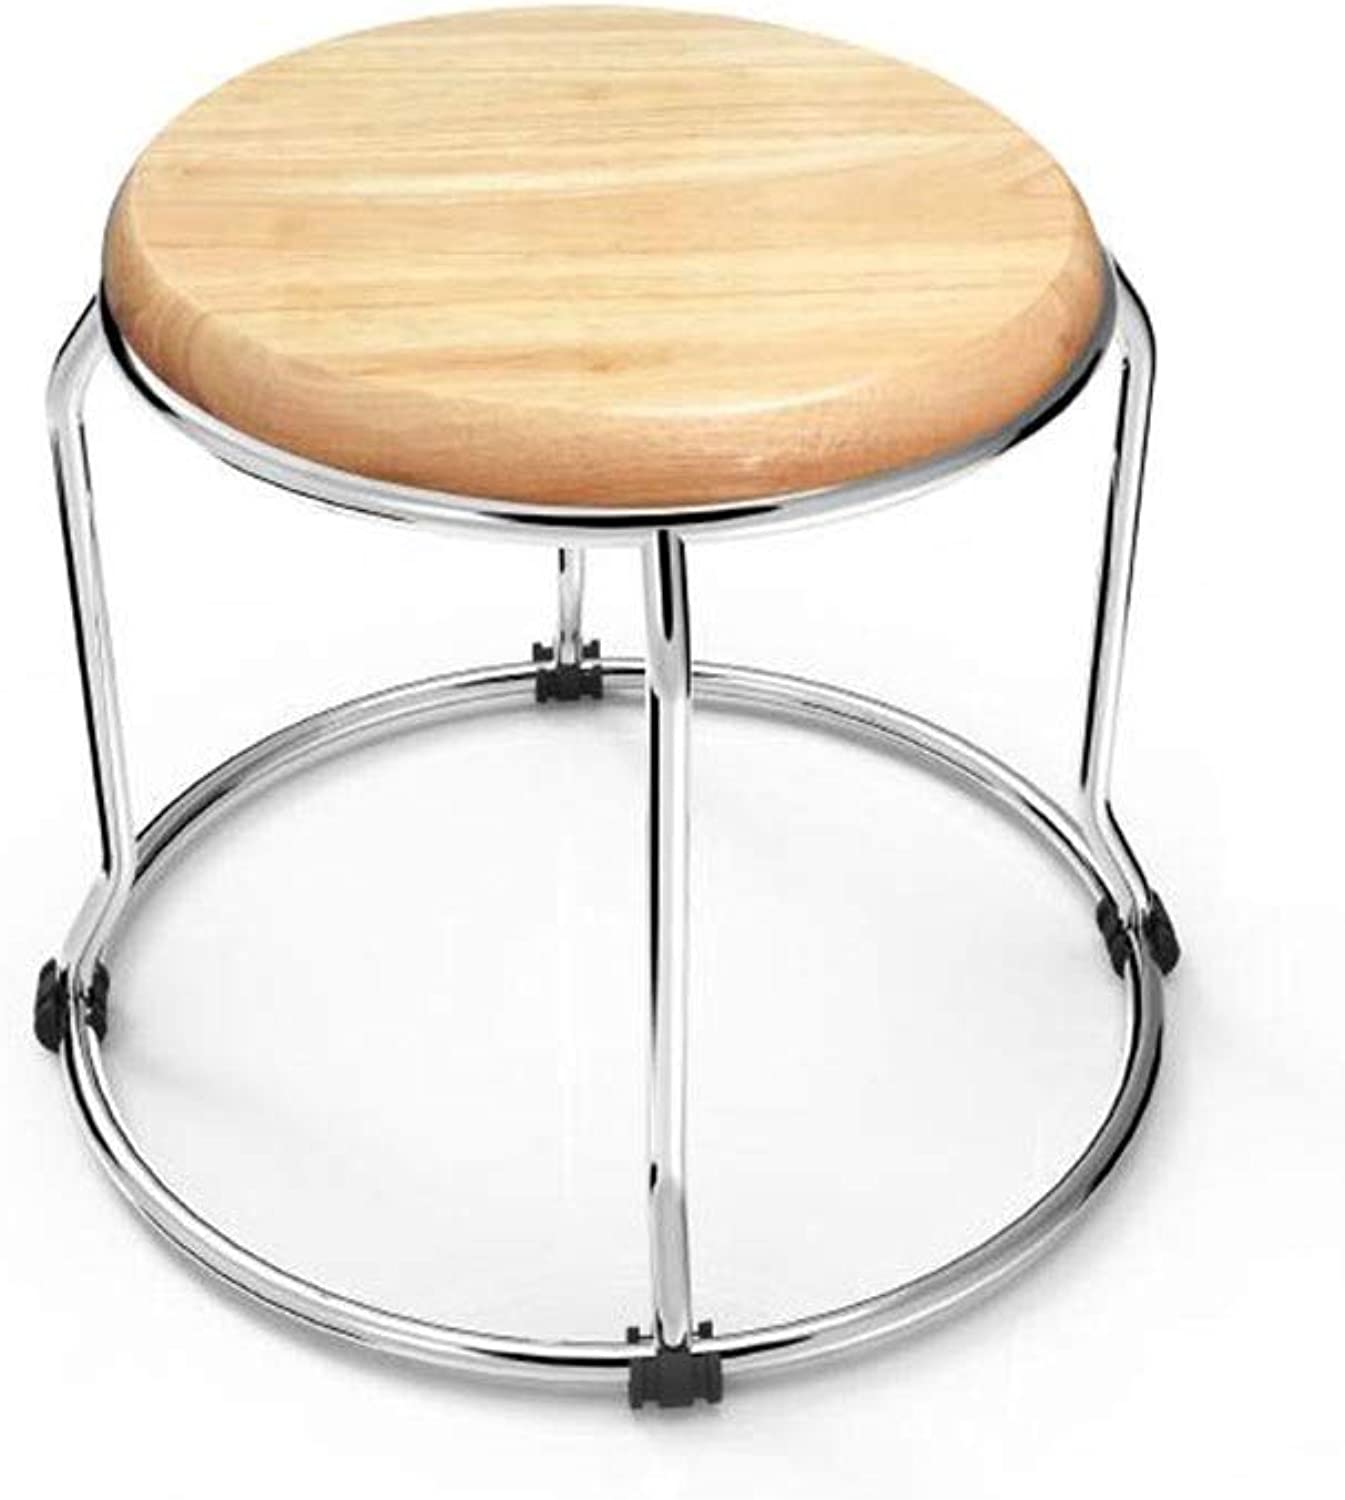 YCSD Stool Fashion Simple Modern Home Solid Wood Round Stool Dining Chair Table Stool Stackable Chairs Environmental Predection Lightweight furniture (Size   H28cm)